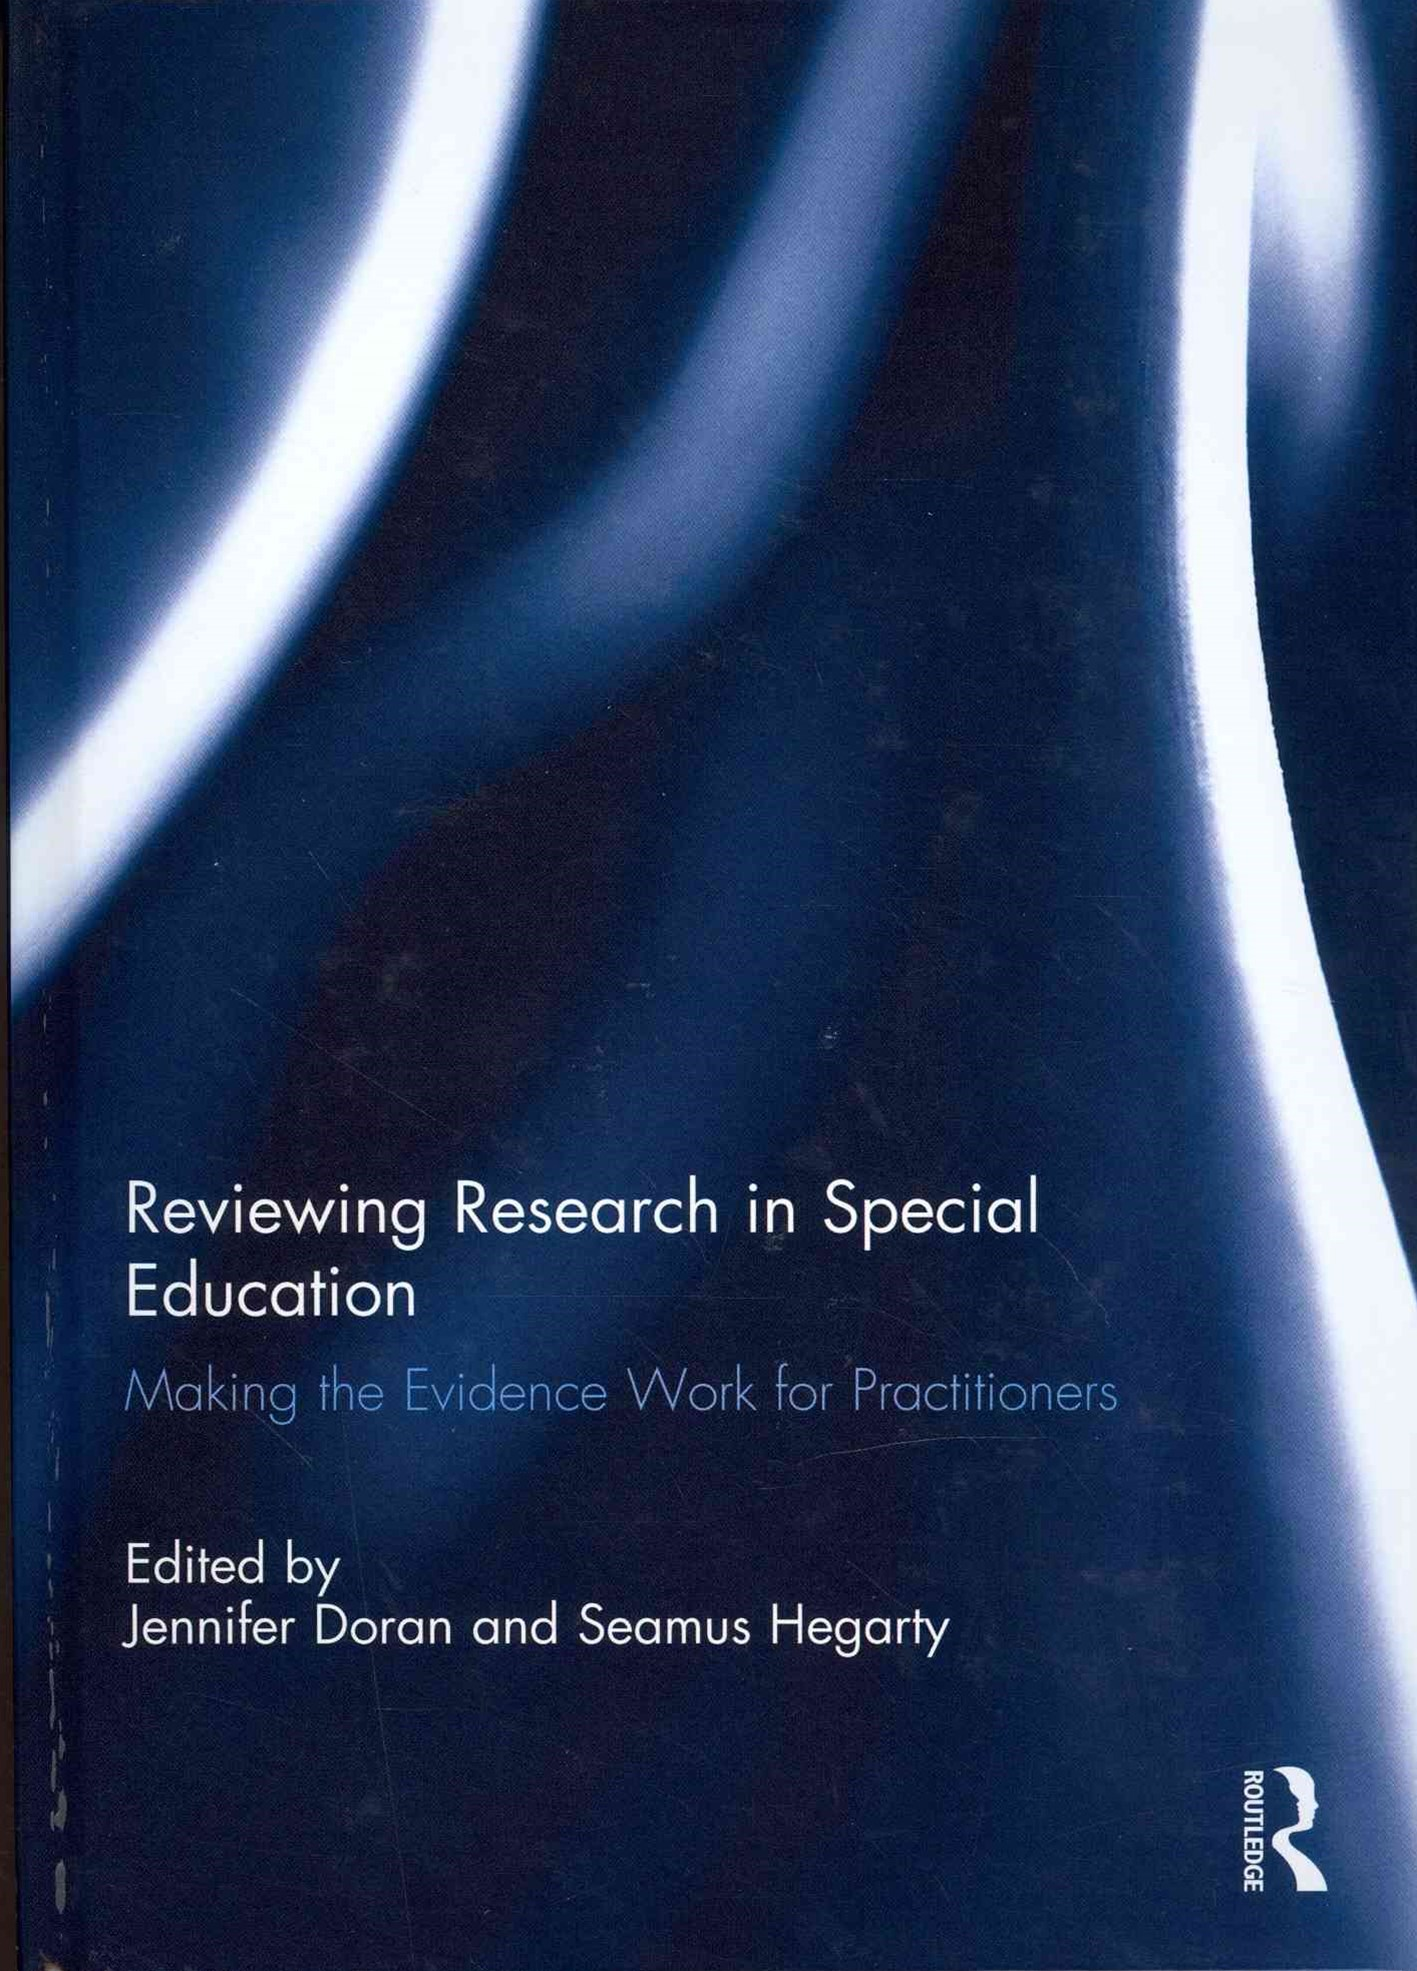 Reviewing Research in Special Education